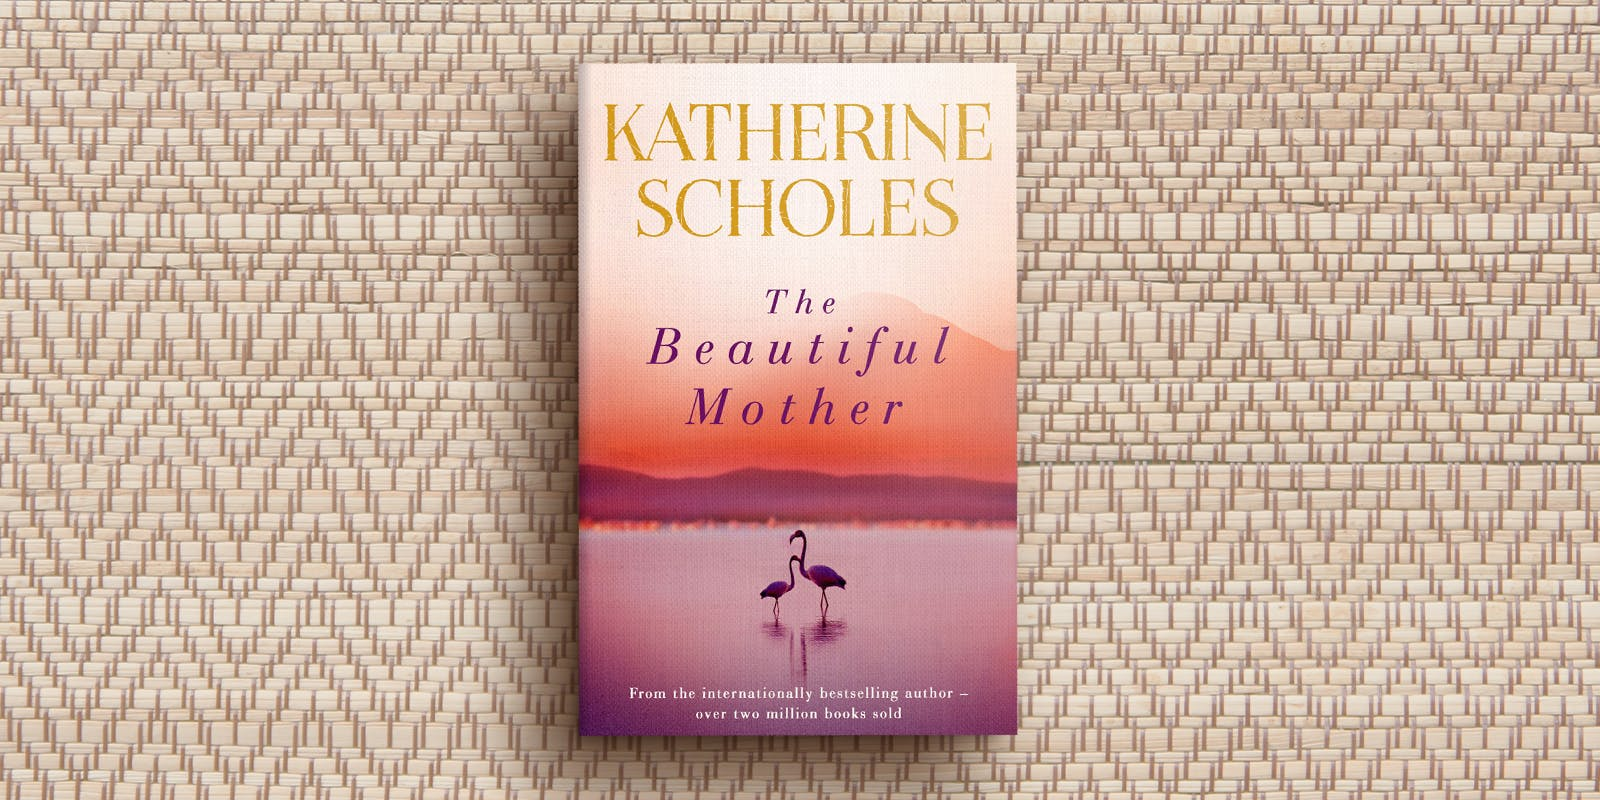 The Beautiful Mother book club notes